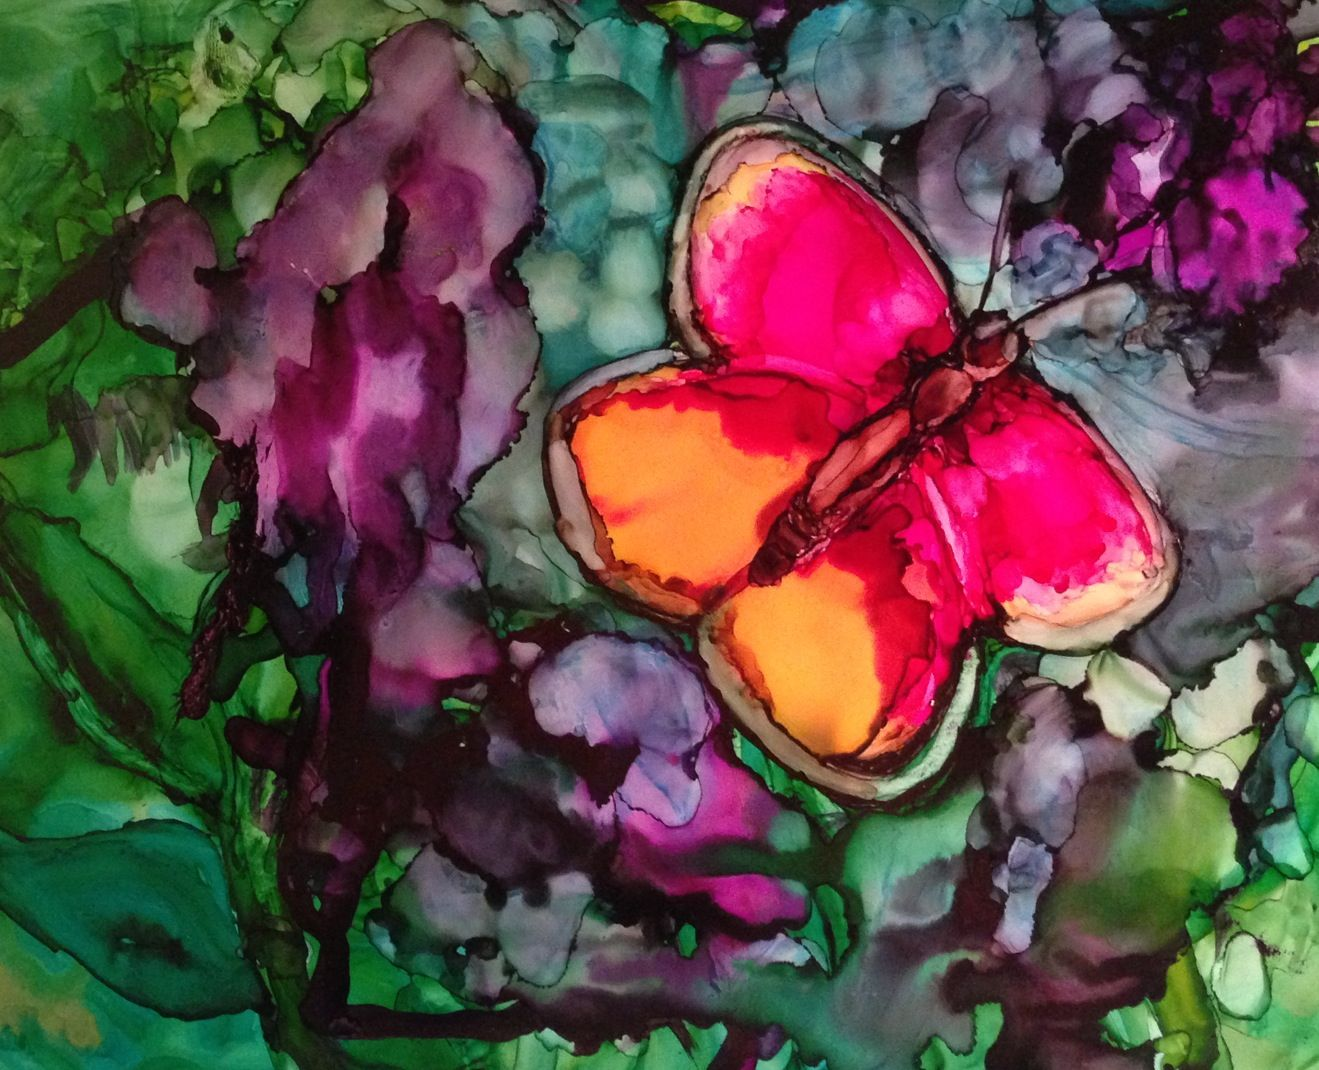 Butterfly 3 in alcohol ink by me, Laurie Henry.  Copyright 2013.